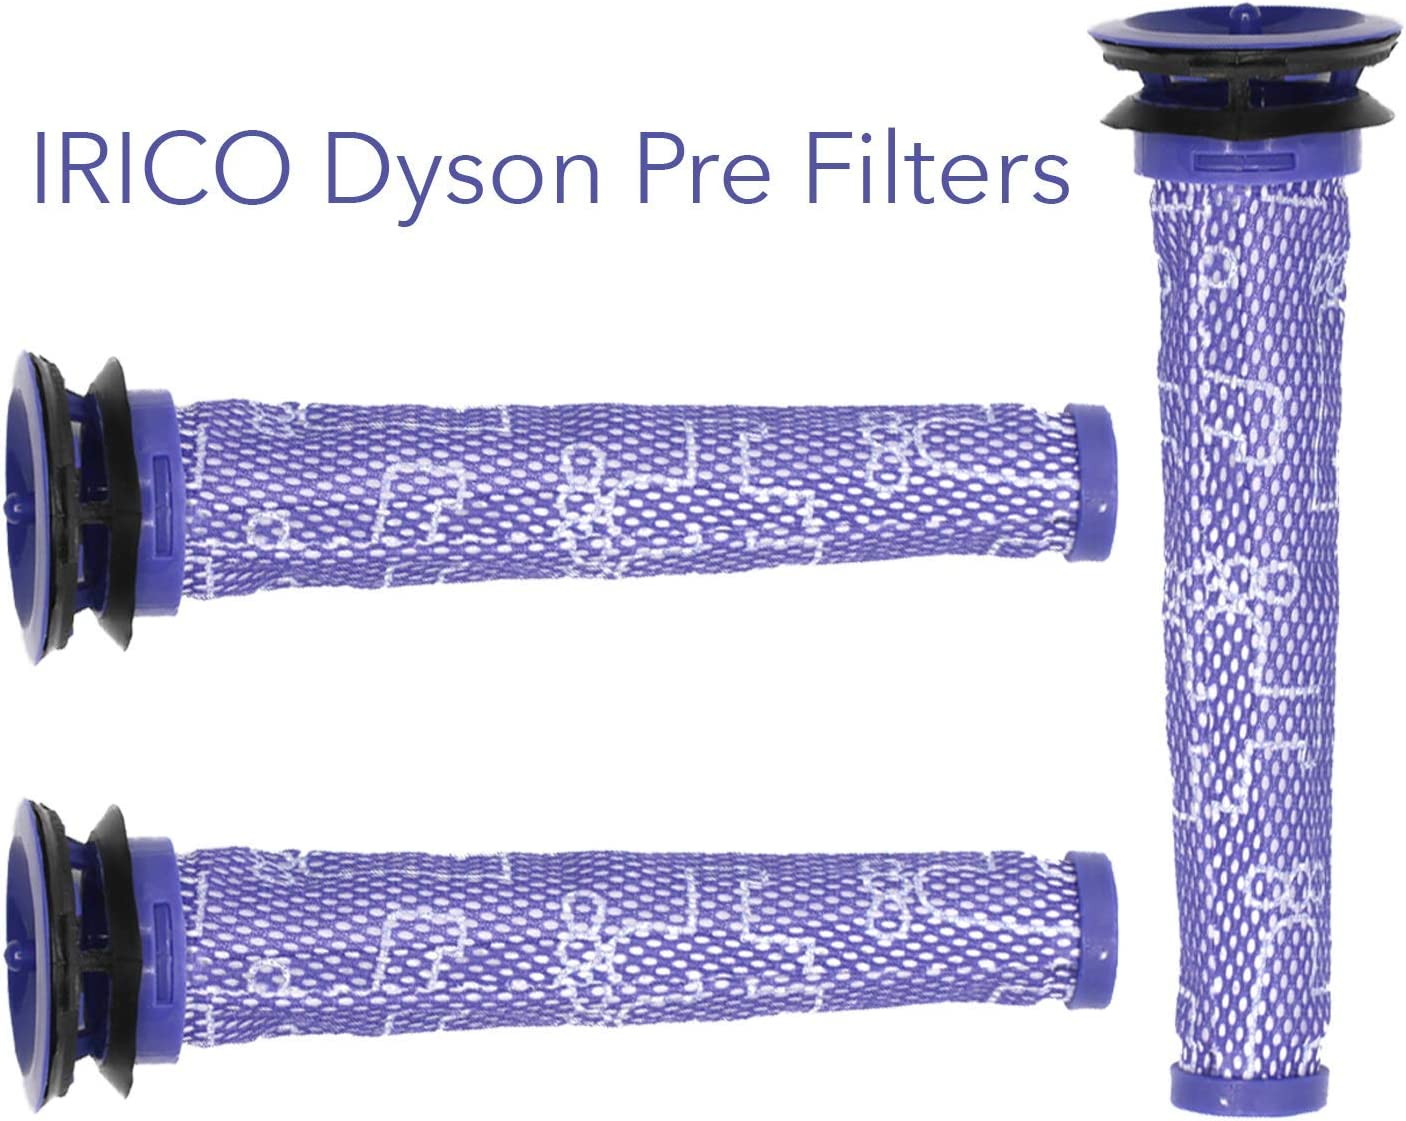 IRICO Dyson V6 V7 V8 Filter | 3 Pre Filters for Dyson V8+, V8, V7, V6, DC62, DC61, DC59, DC58 Vacuum | Replacement Parts for #965661-01